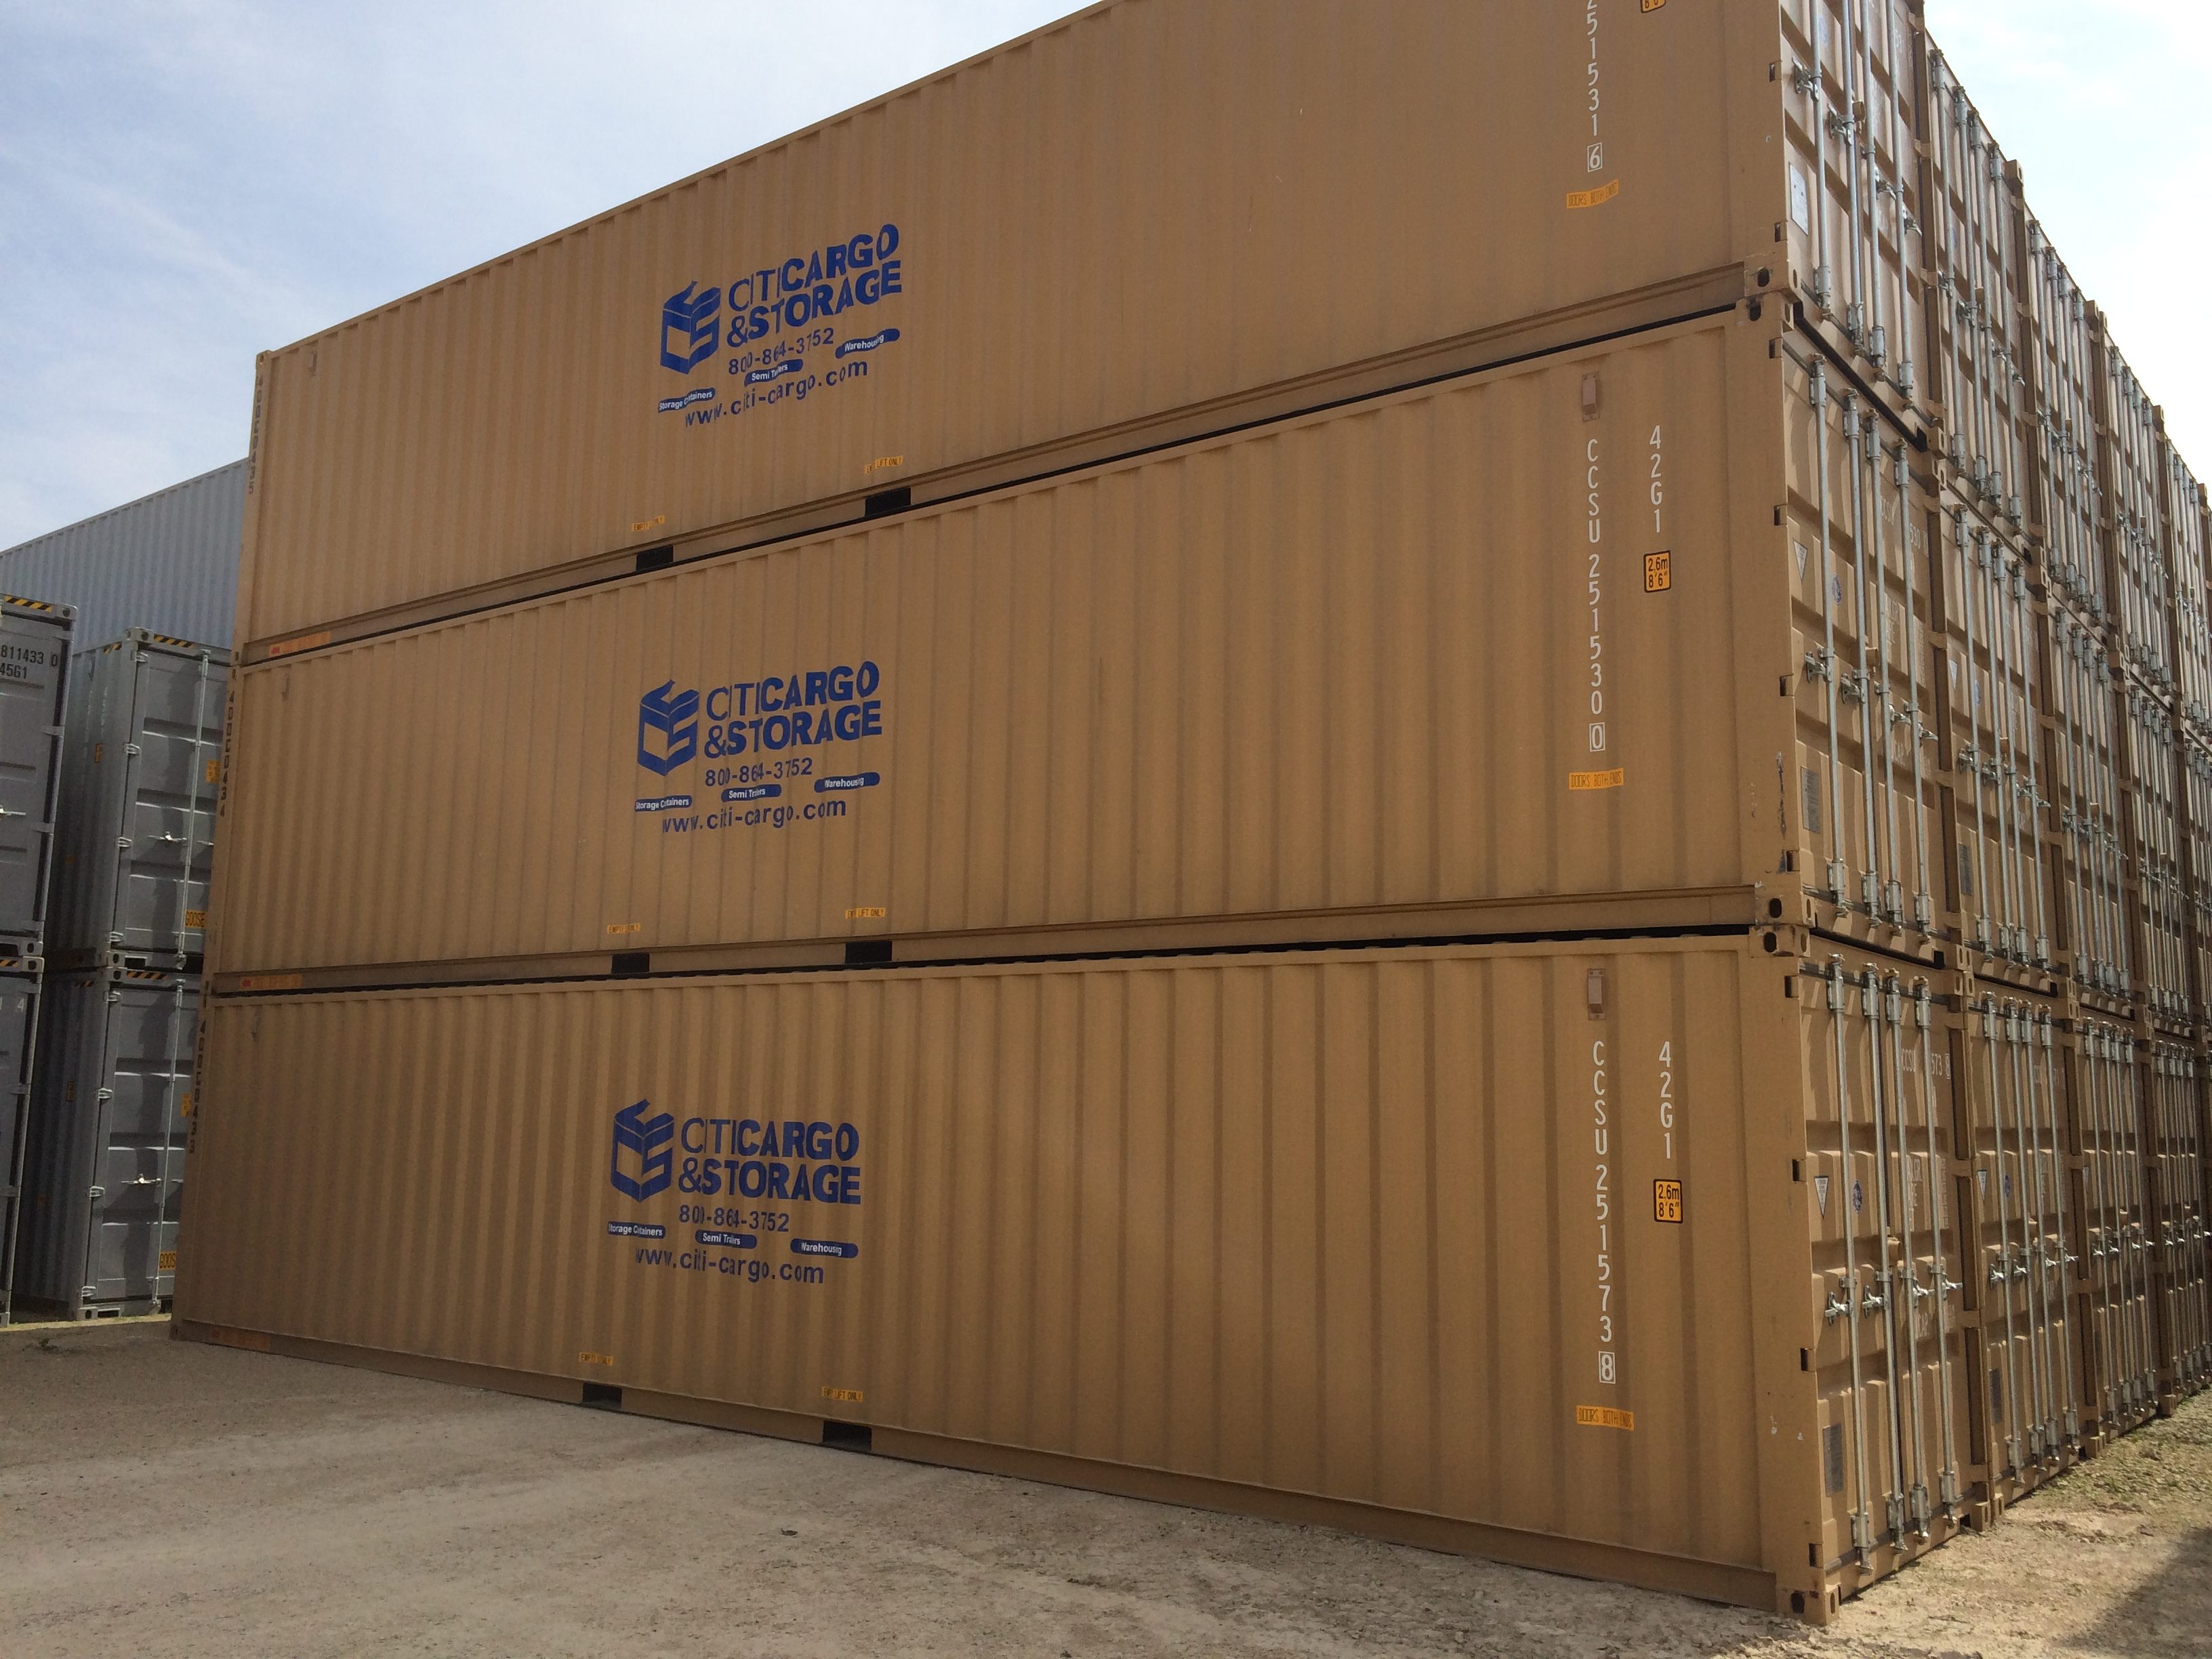 Storage Containers Minnesota On Site Portable and Mobile Storage